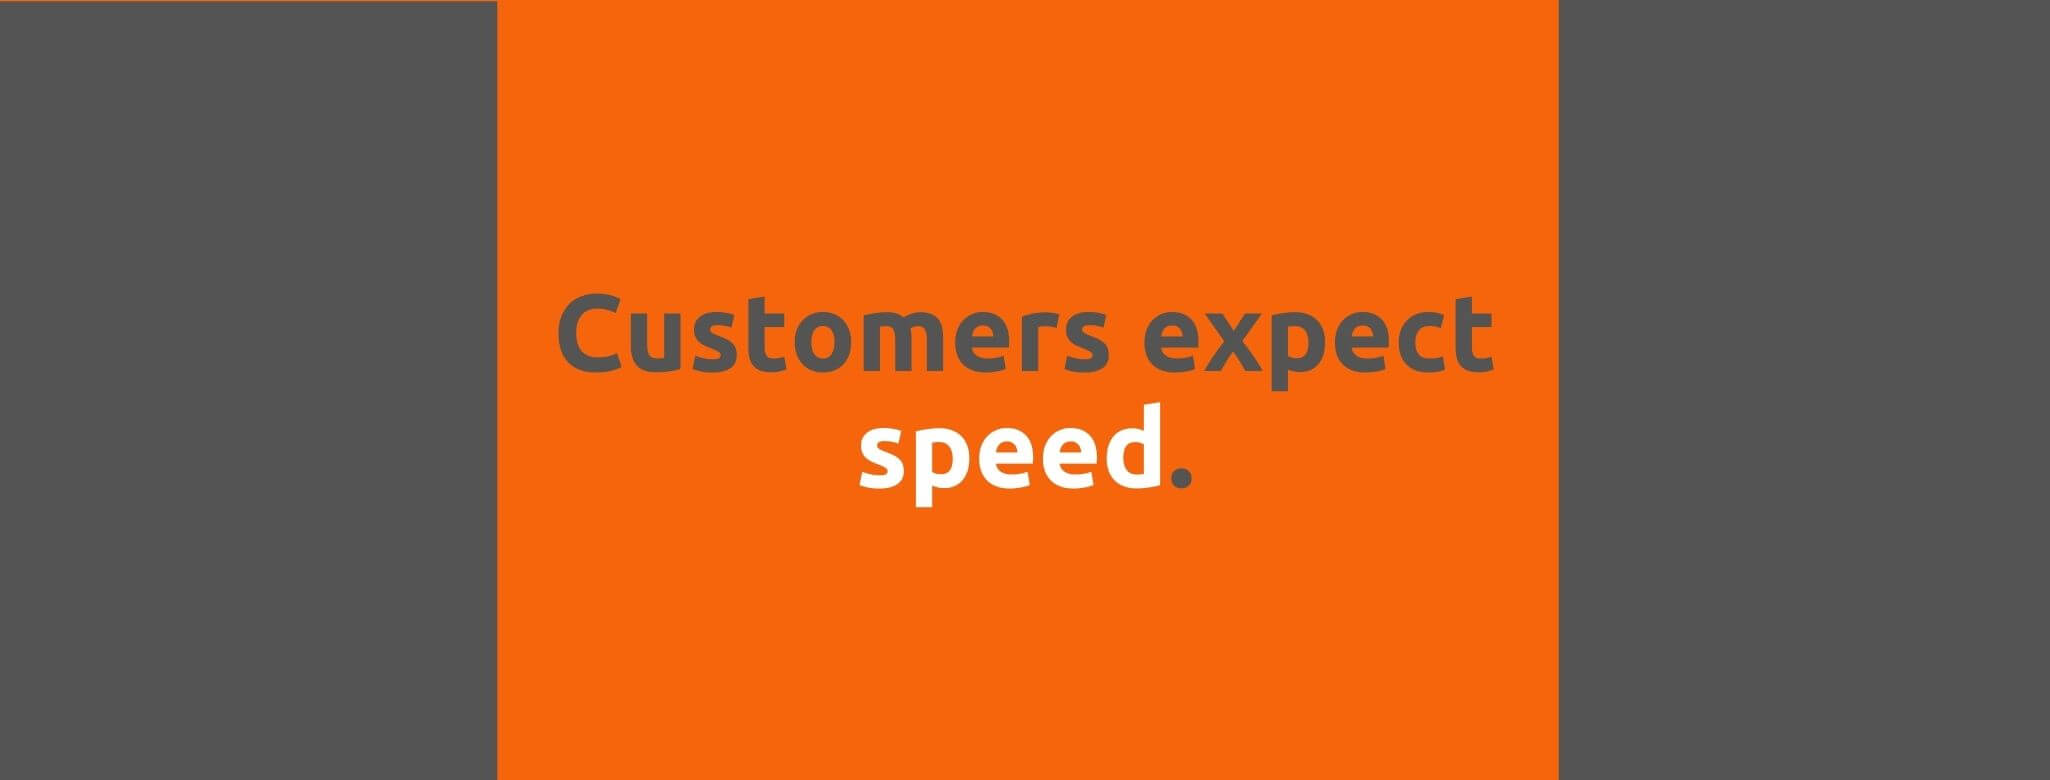 Customers expect speed - Customer Expectations - Replyco Helpdesk Software for eCommerce